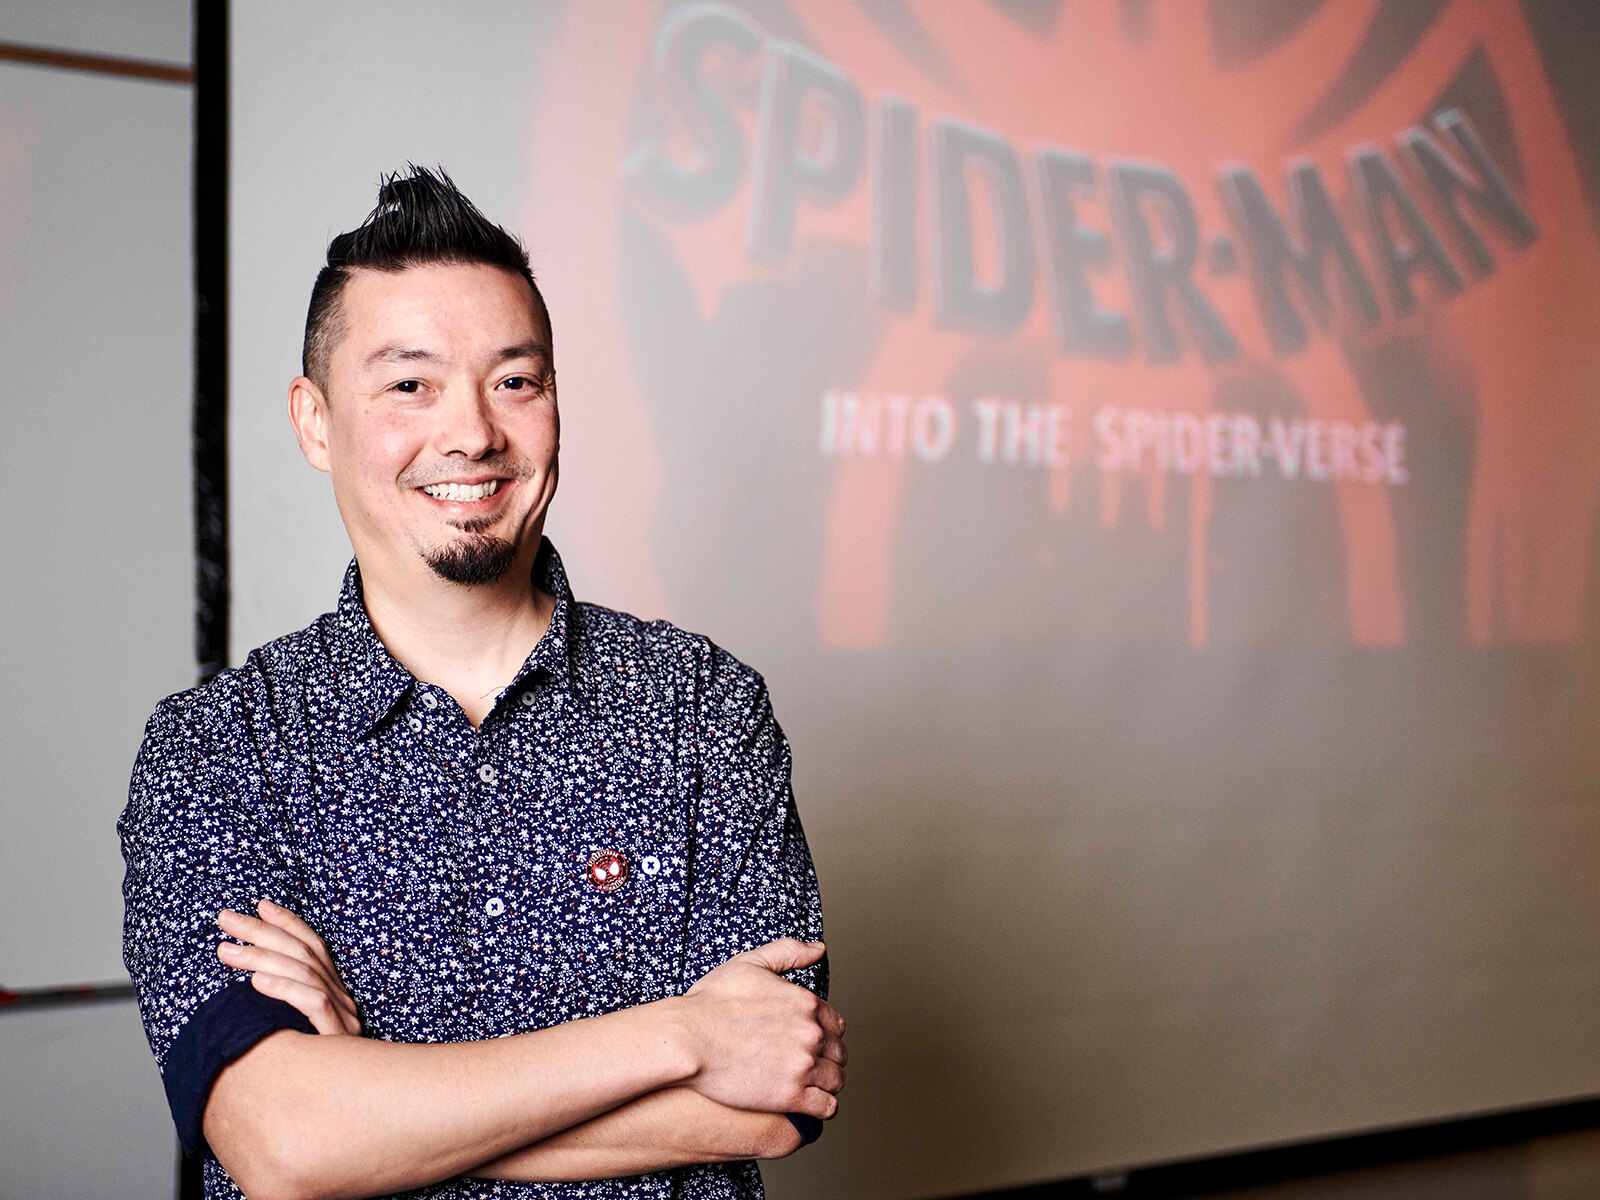 Nick Kondo smiles in front of a projection of Spider-Man: Into the Spider-Verse's title card.